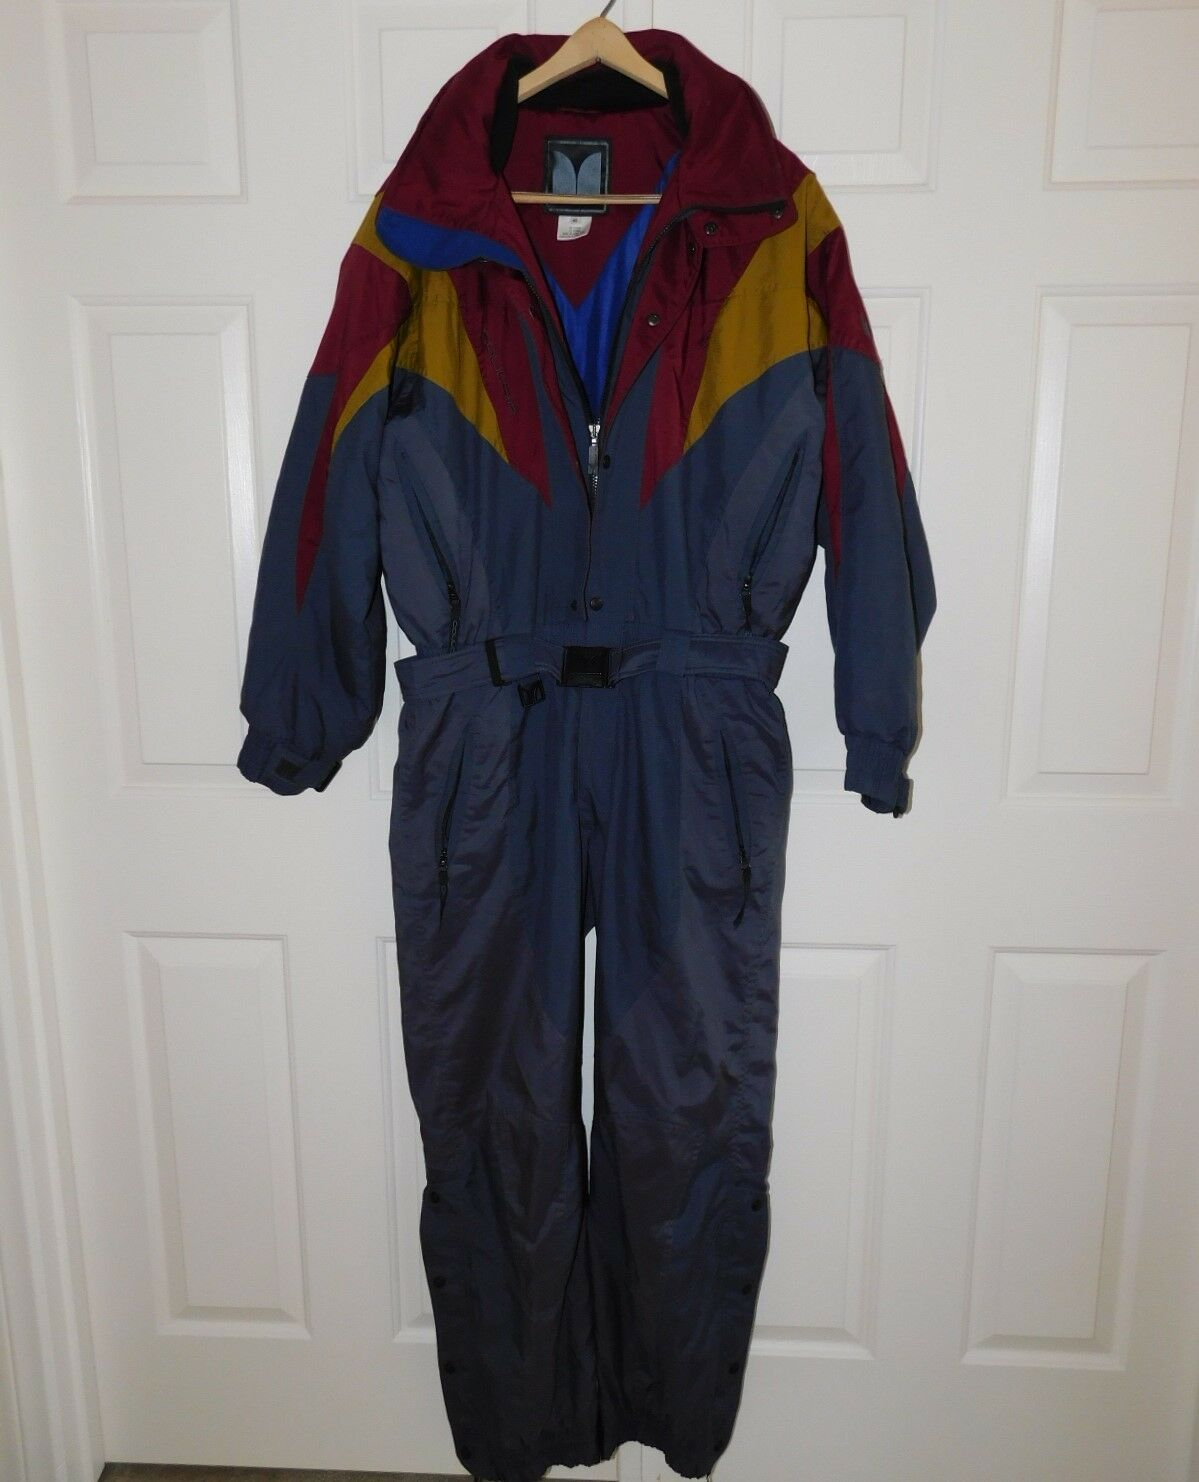 COULOIR SKI SNOW SUIT Multi color Insulated High Quality One Piece Men's 42 M L